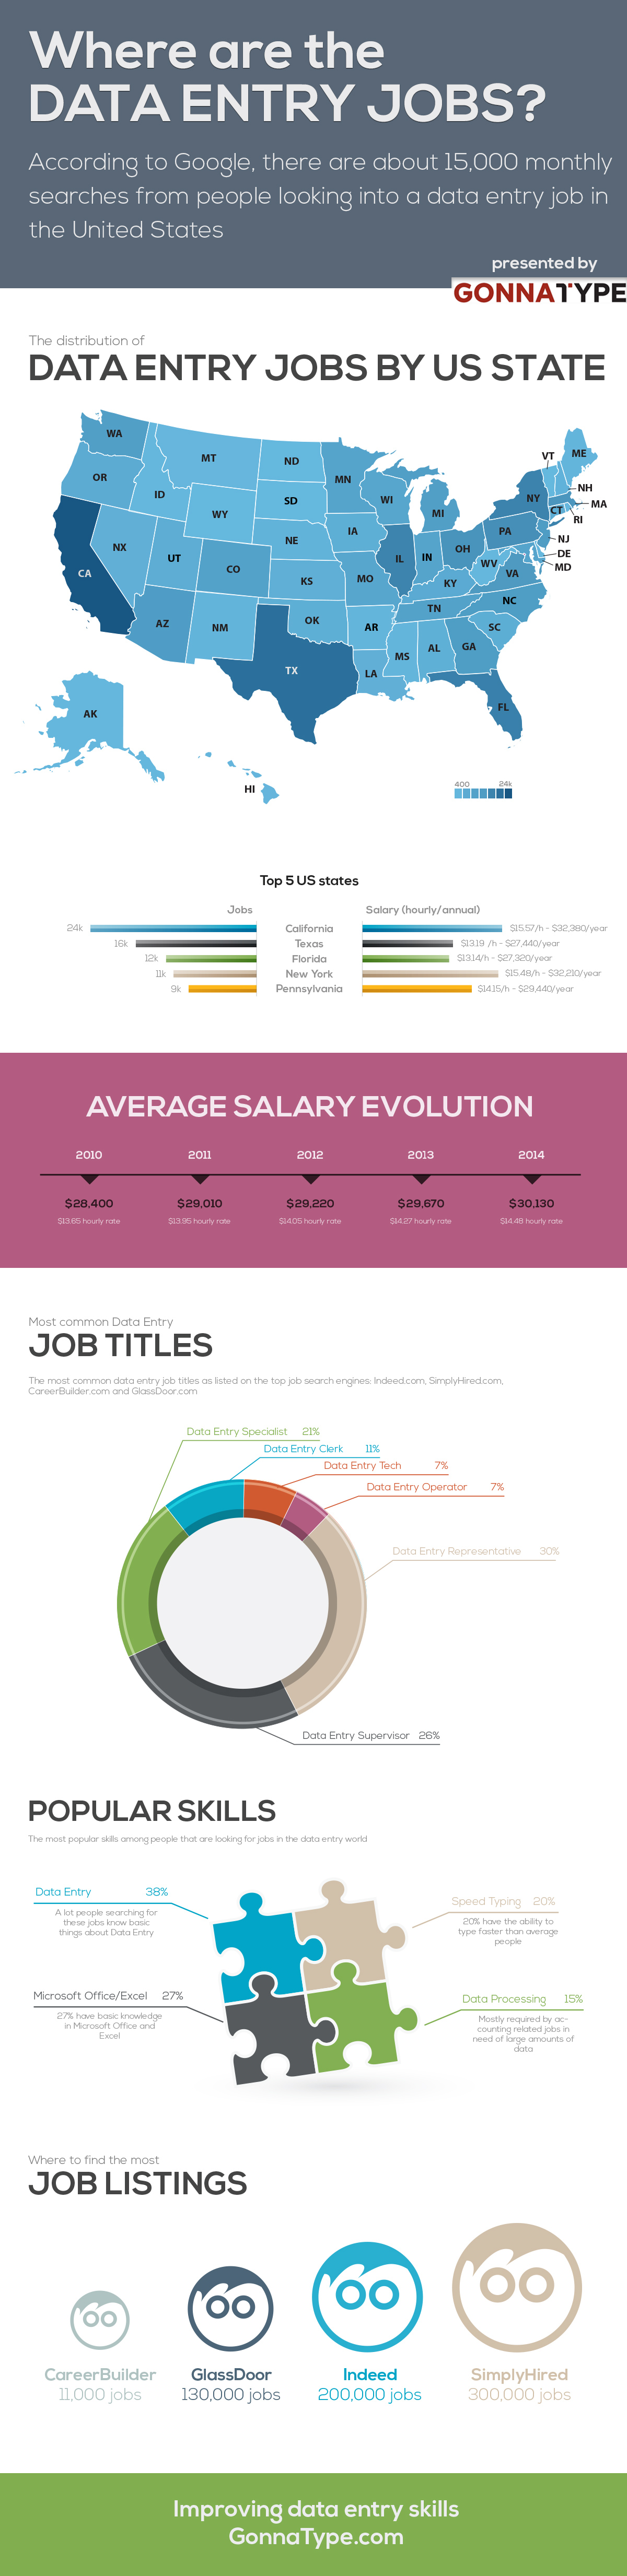 Modern Data Entry Jobs In Home Based Images - Home Decorating ...